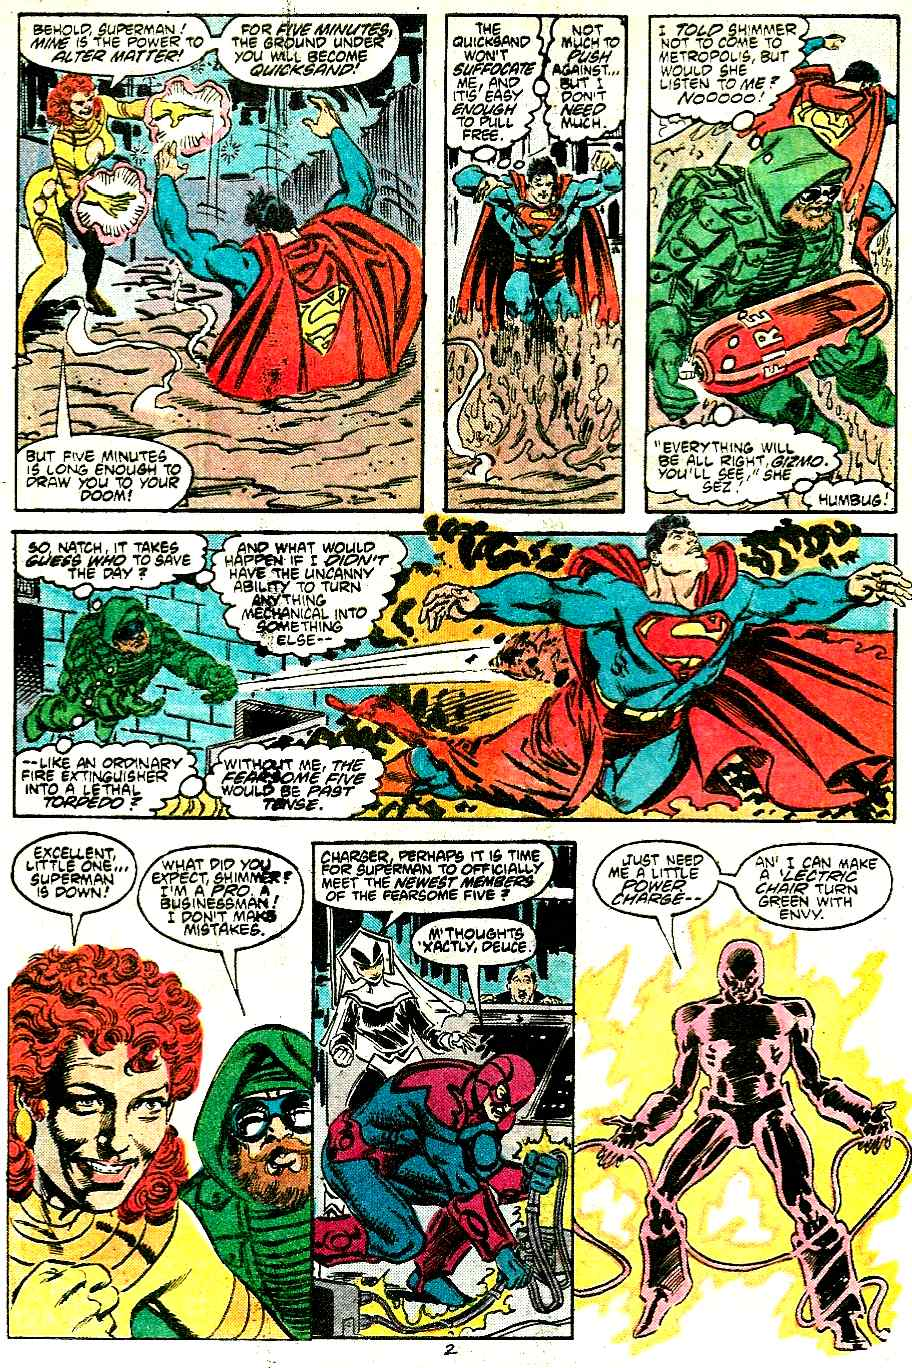 Adventures of Superman (1987) 430 Page 2